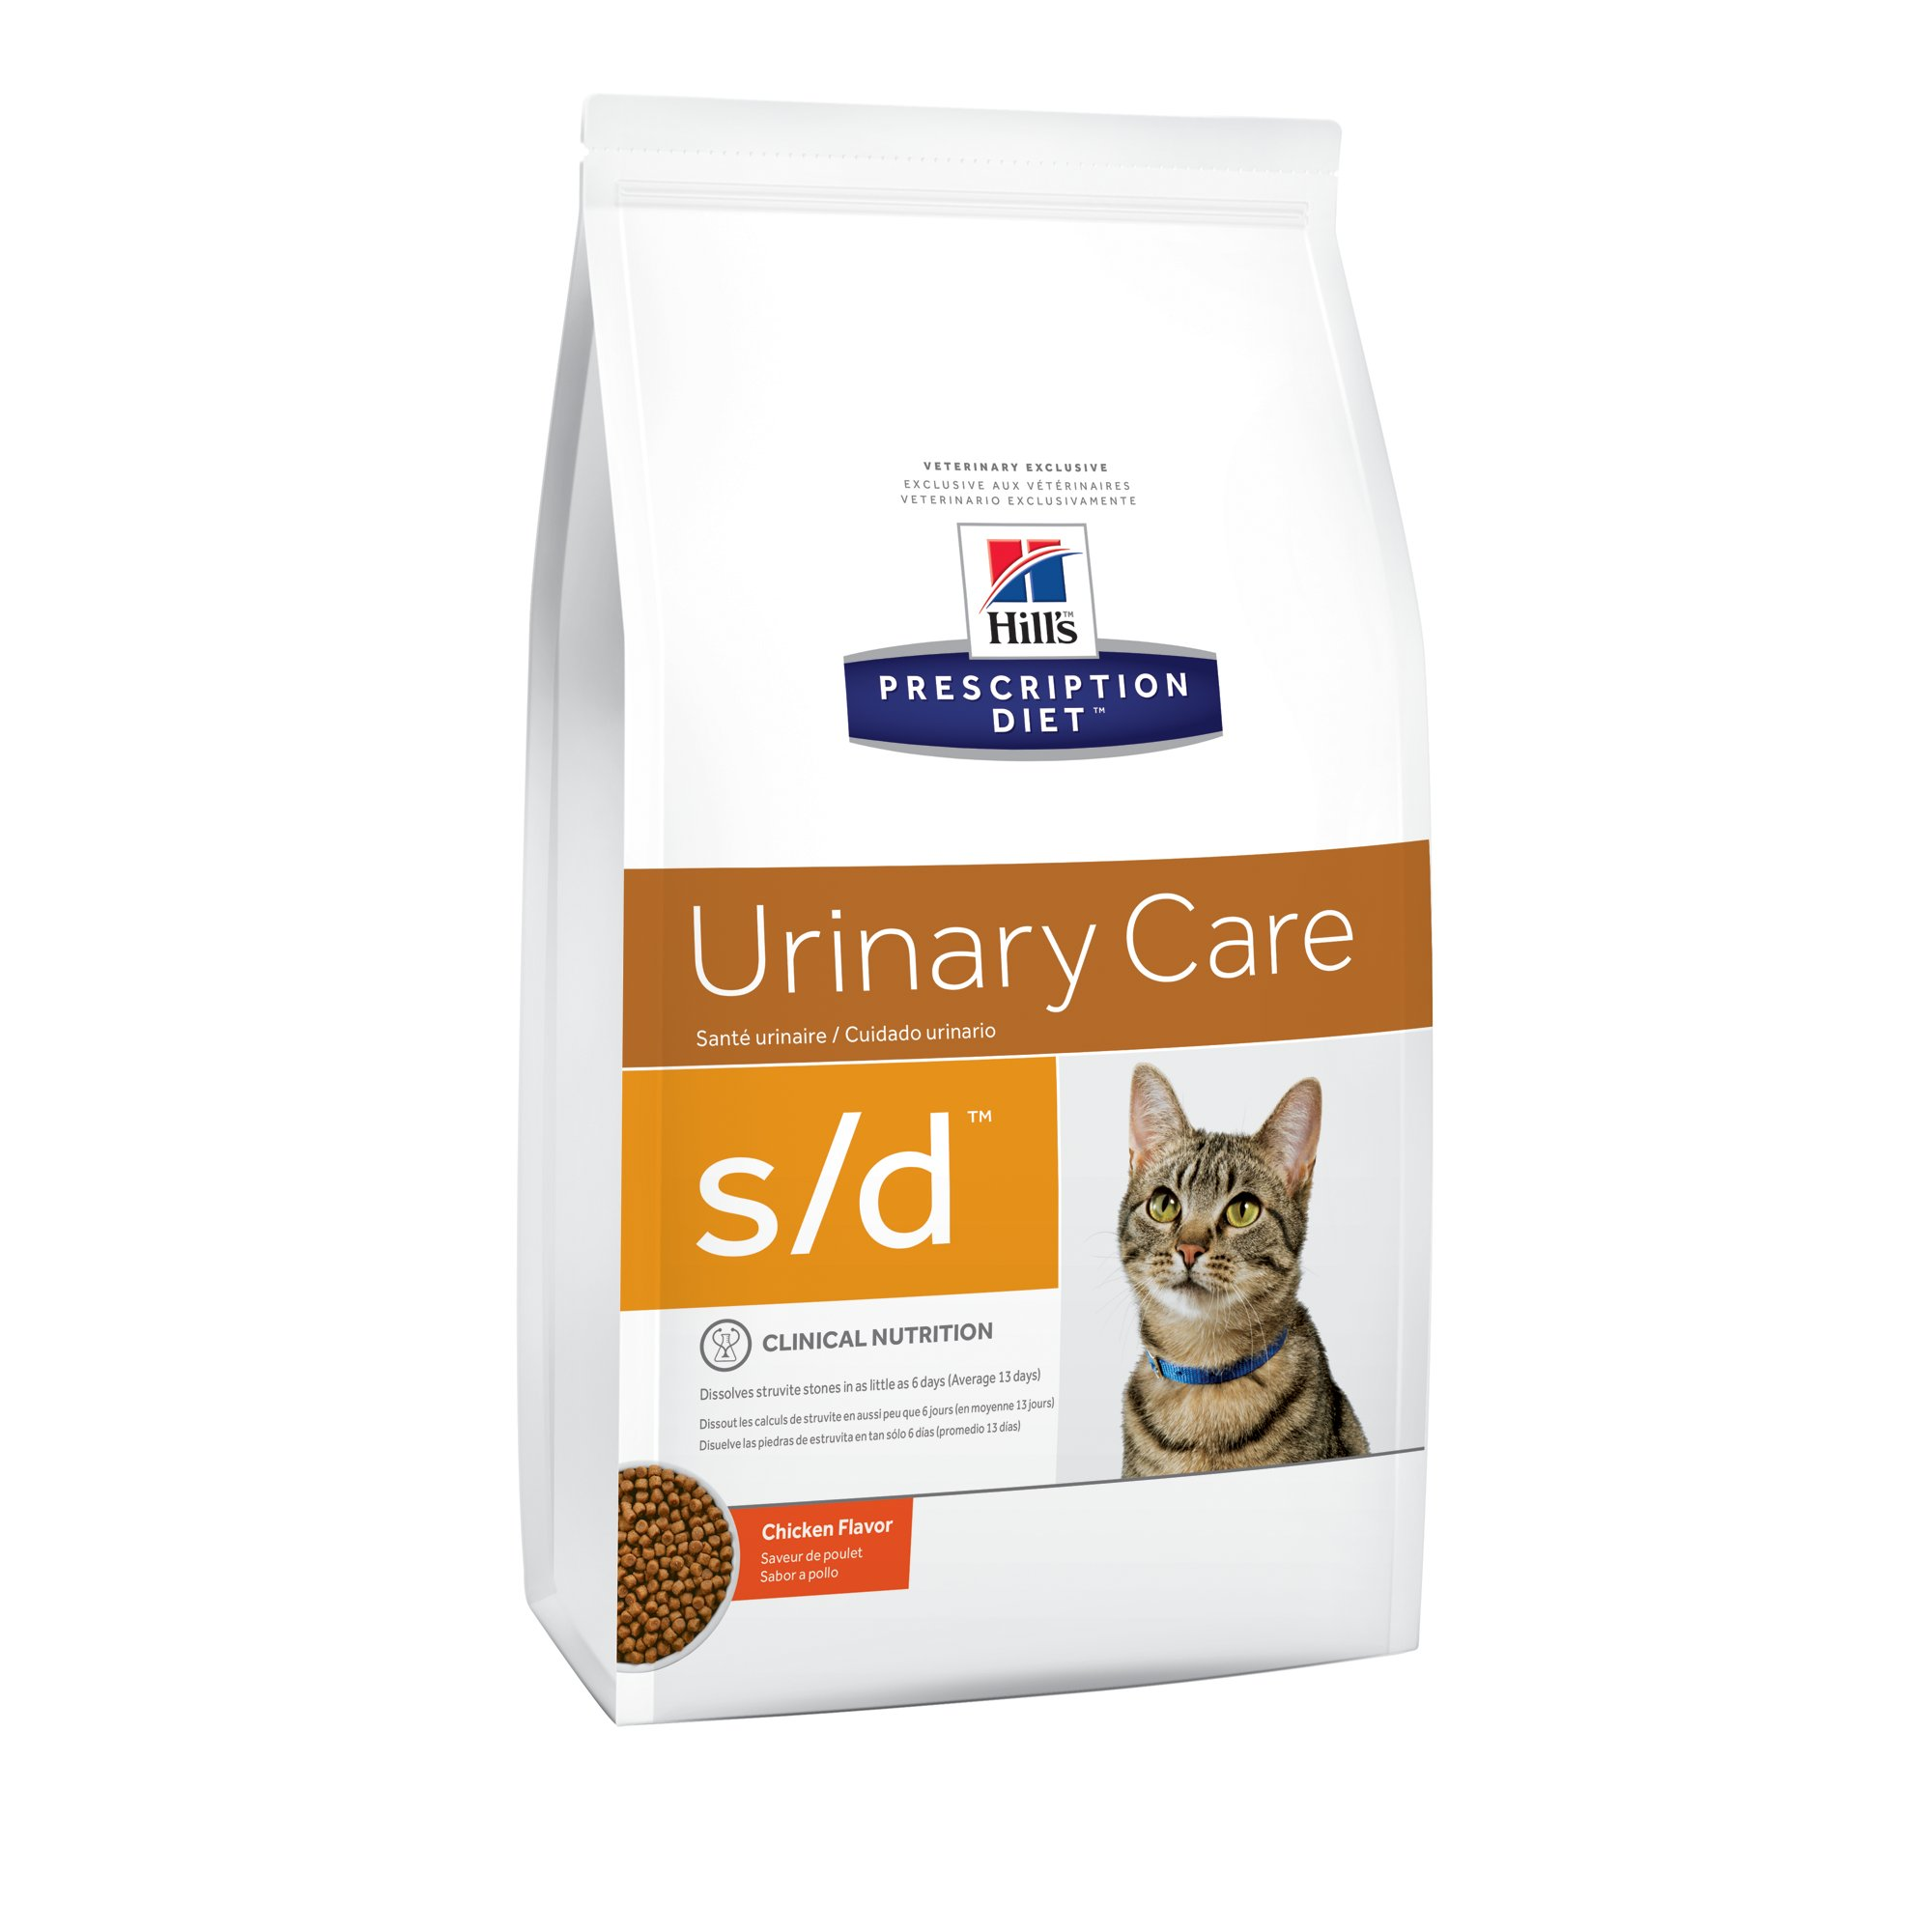 Urinary Grain Free Cat Food